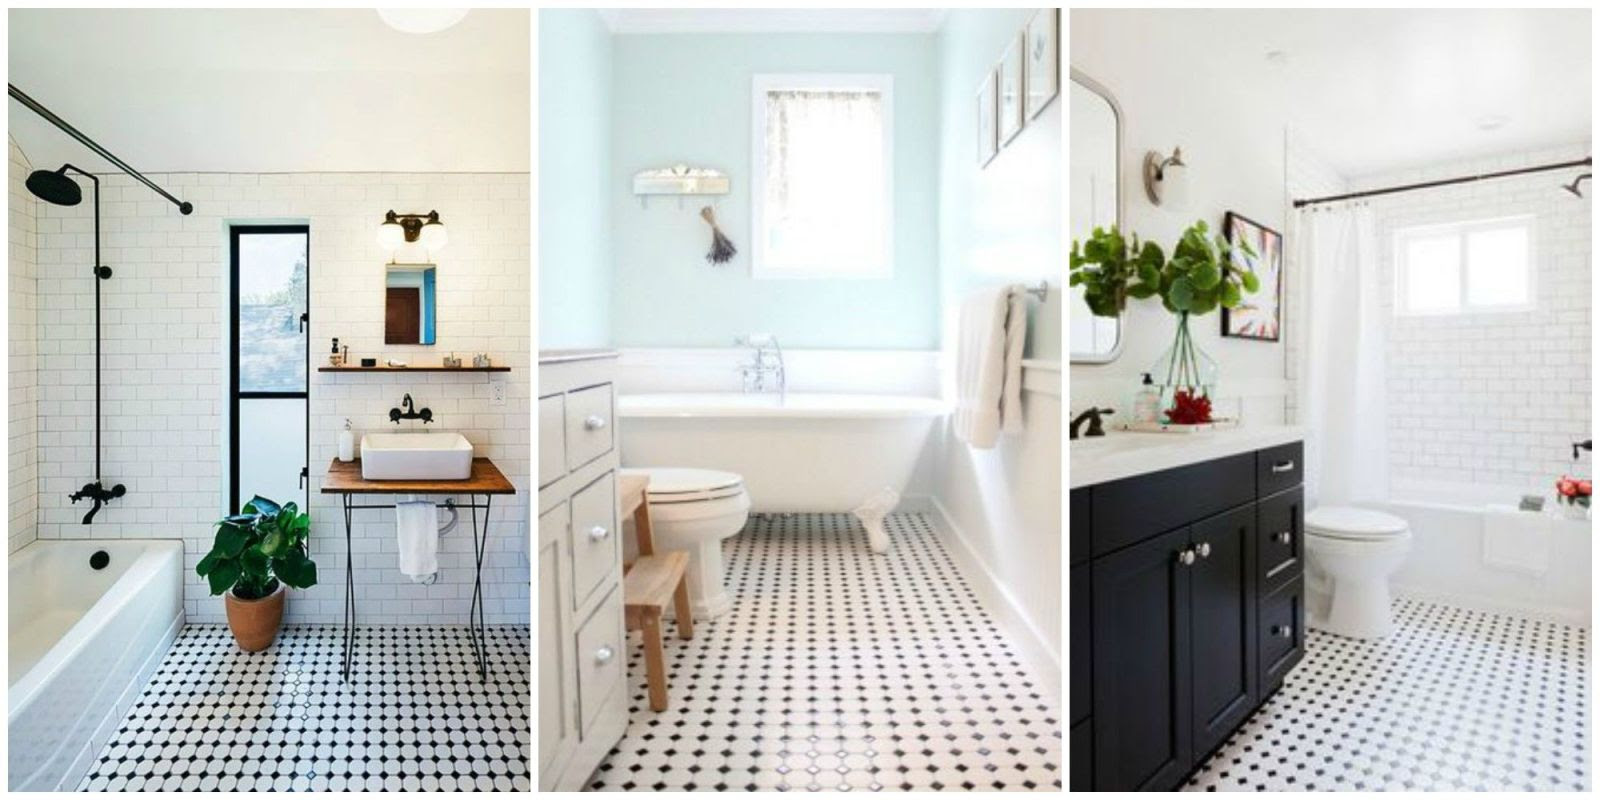 Classic Black and White Tiled Bathroom Floors are Making a ...